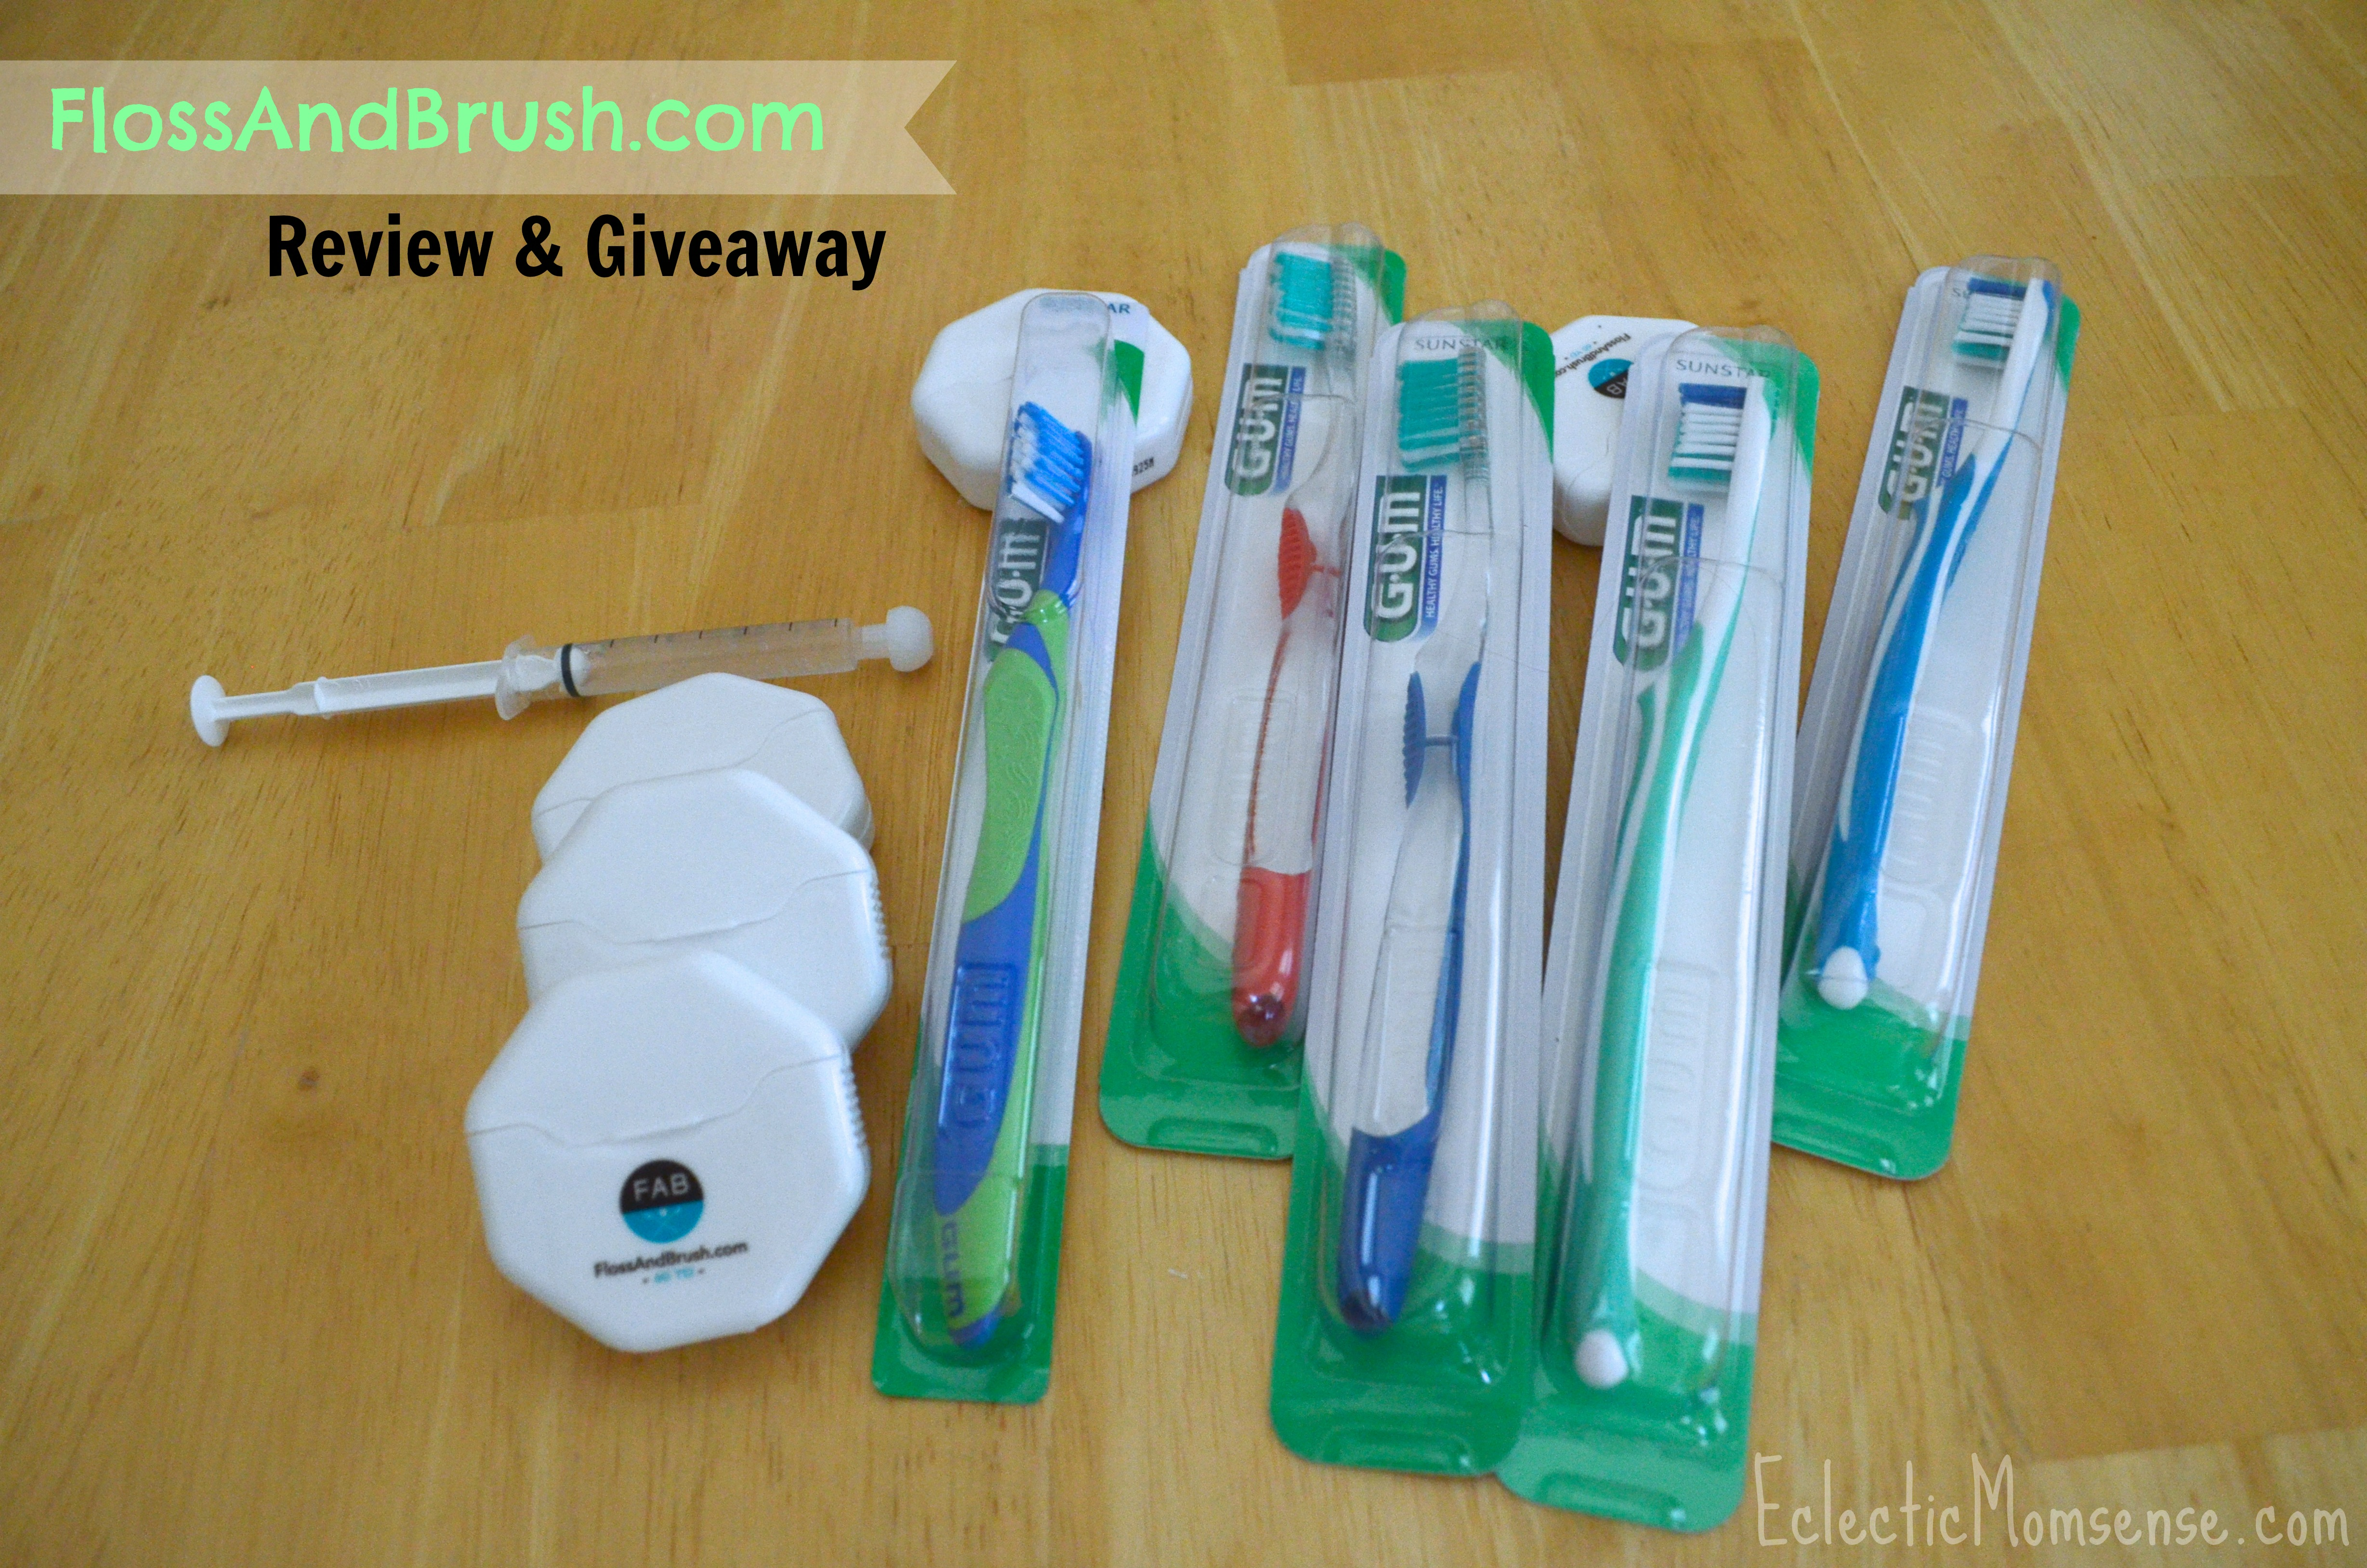 Put on a #FABsmile with FlossAndBrush.com Review and Giveaway #Sponsored